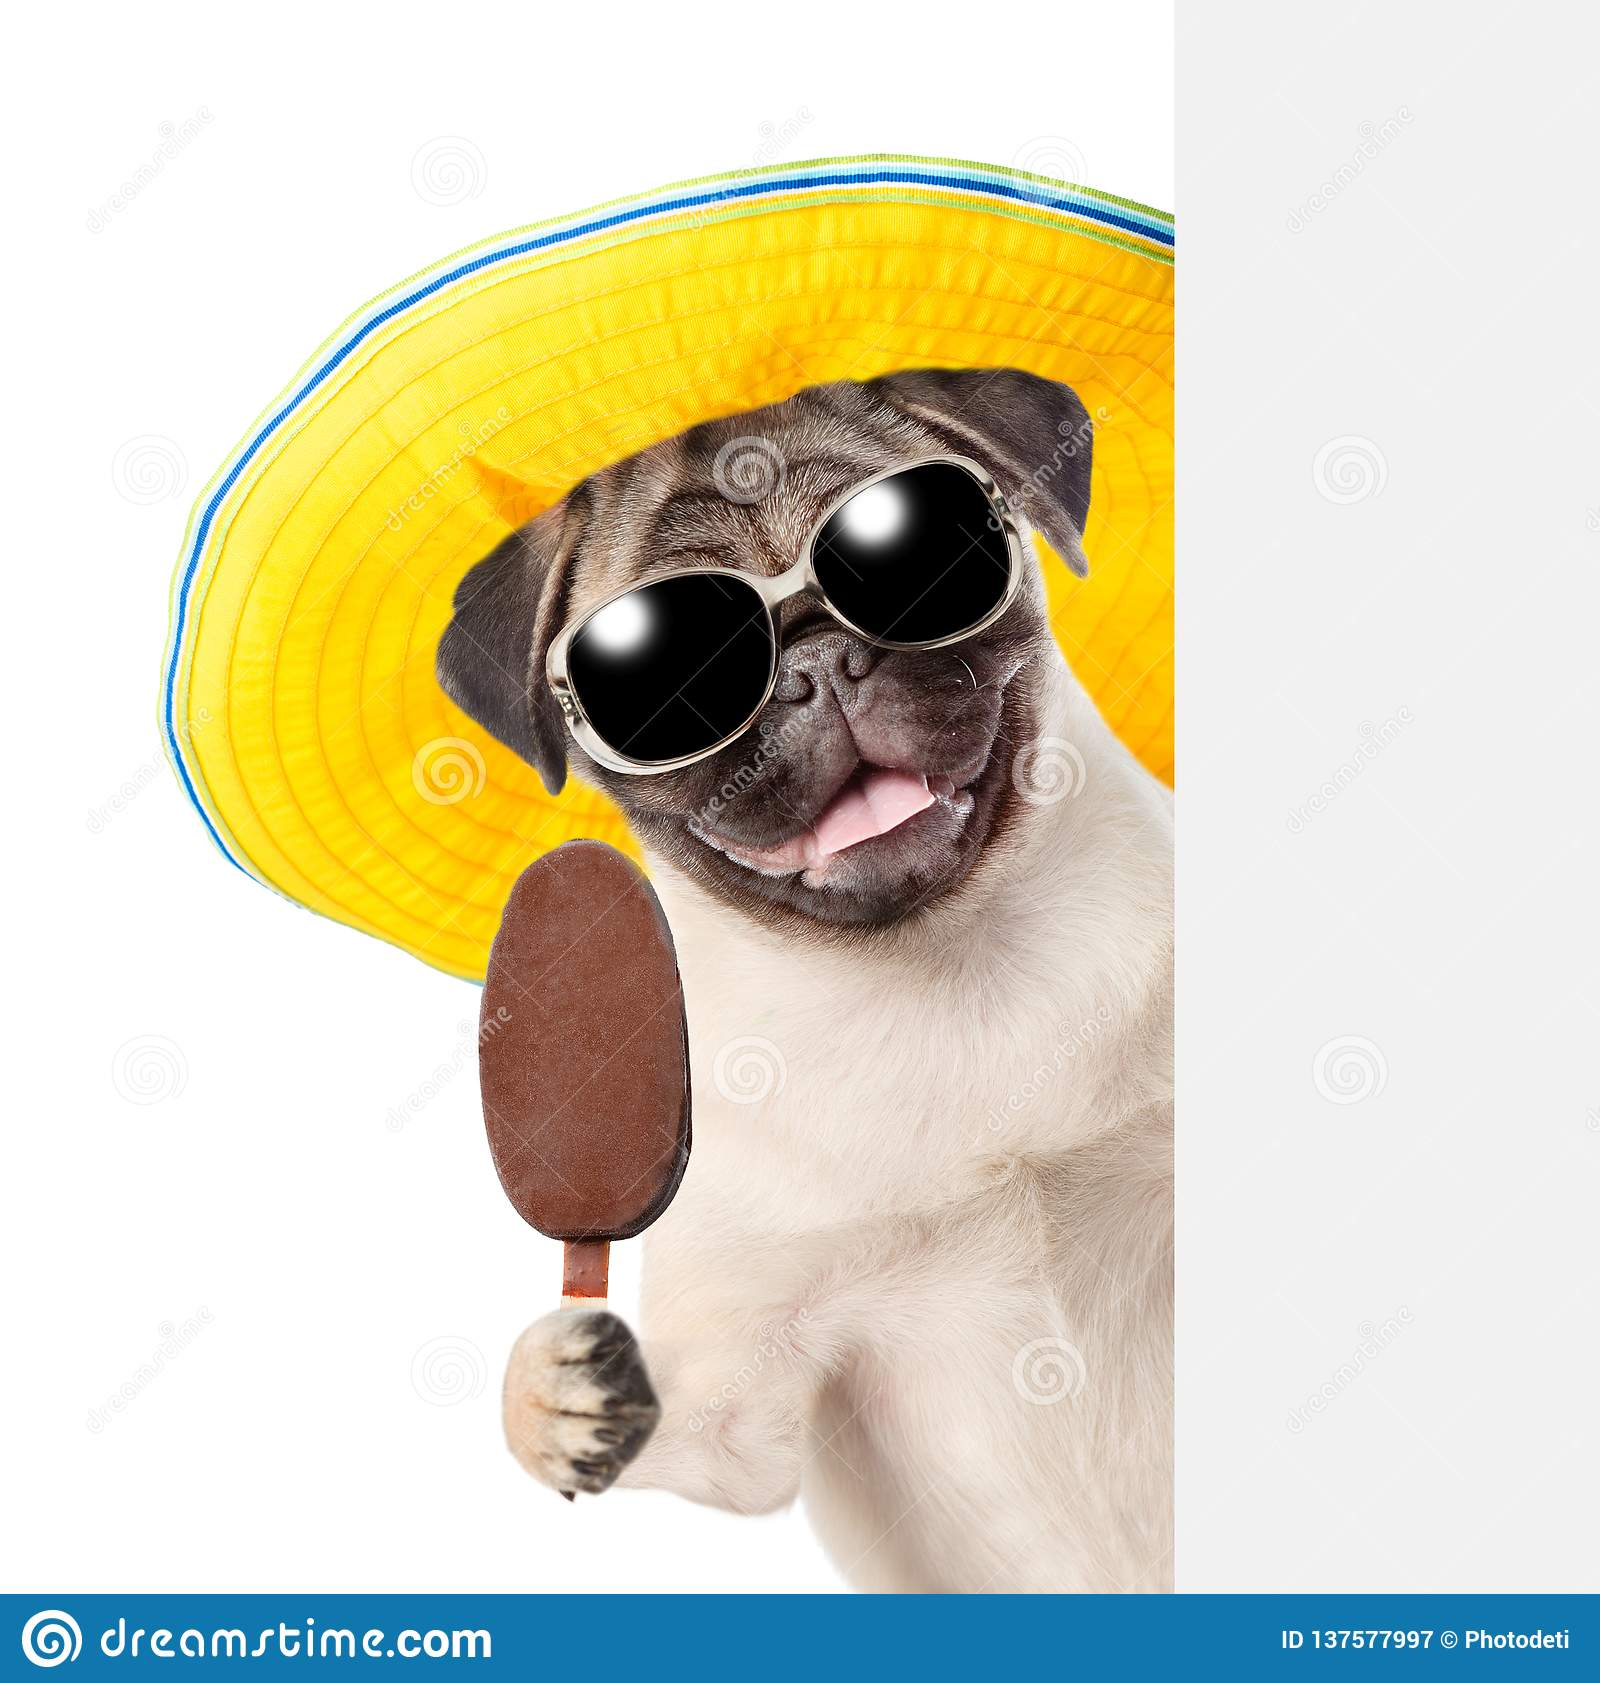 bedaf12e03e5 Dog Sunglasses Hat Stock Images - Download 870 Royalty Free Photos